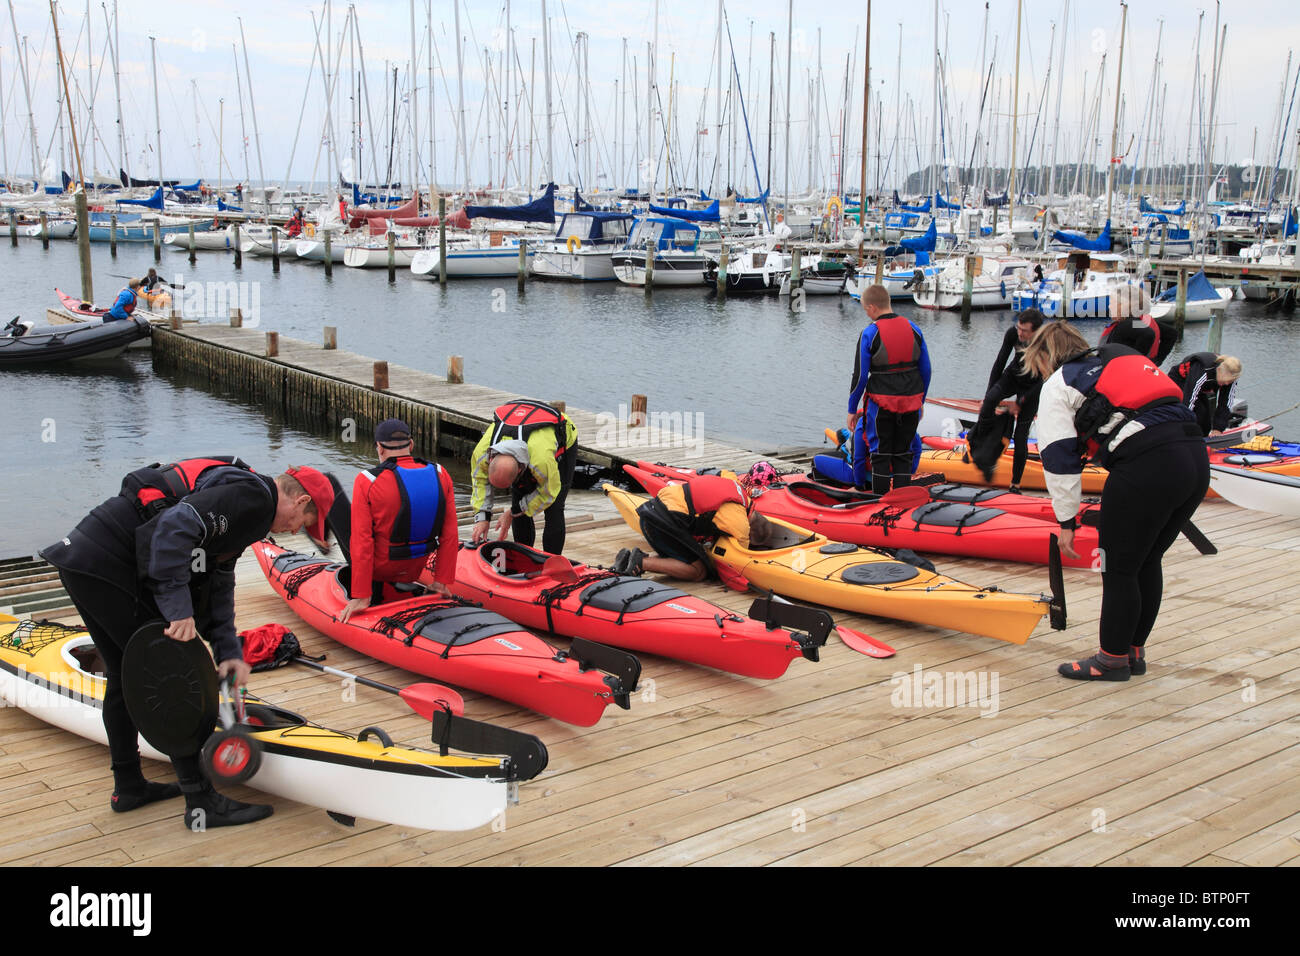 people of an Danish sports club canoeing with single seater canoes on the Baltic Sea - Stock Image